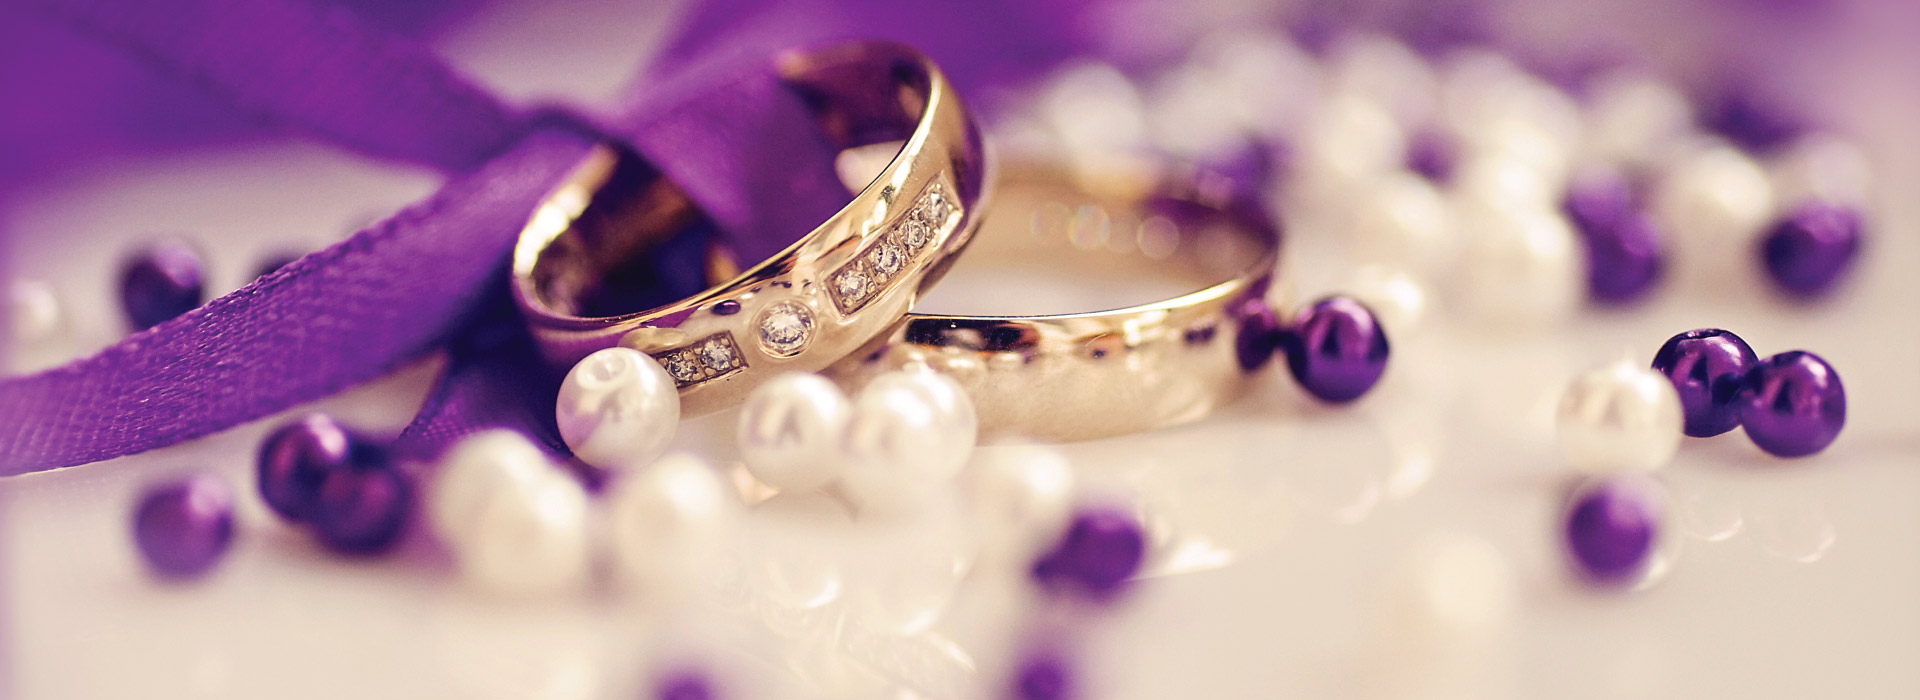 Two wedding rings in a purple background